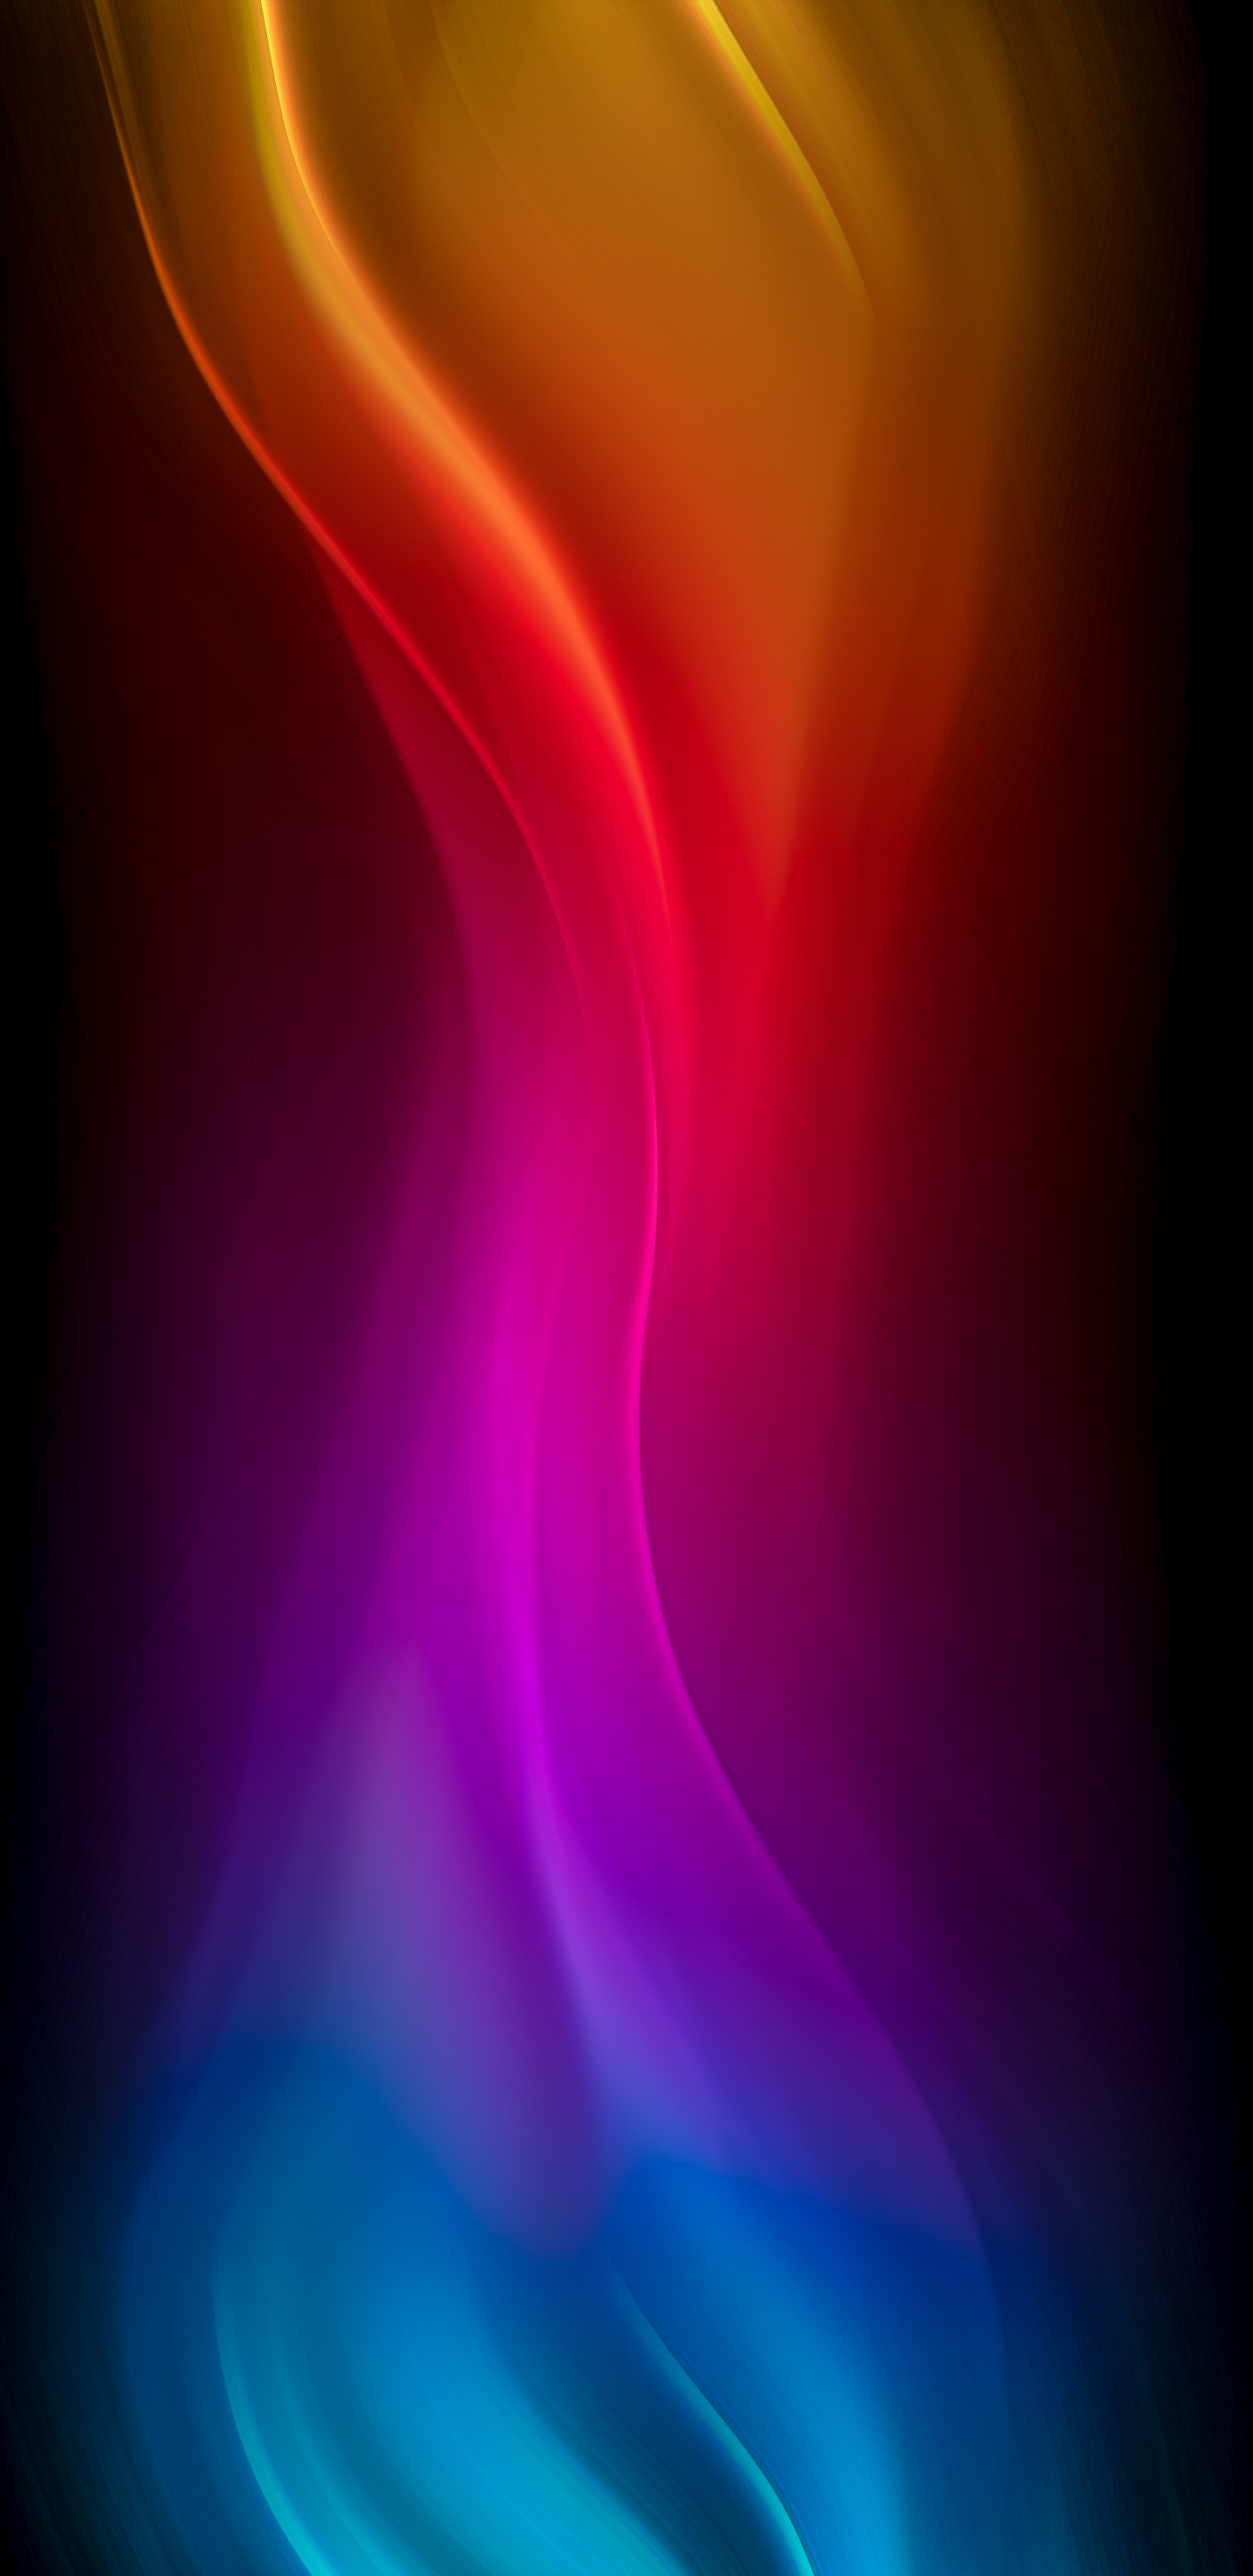 blue purple red yellow waves 4k d7